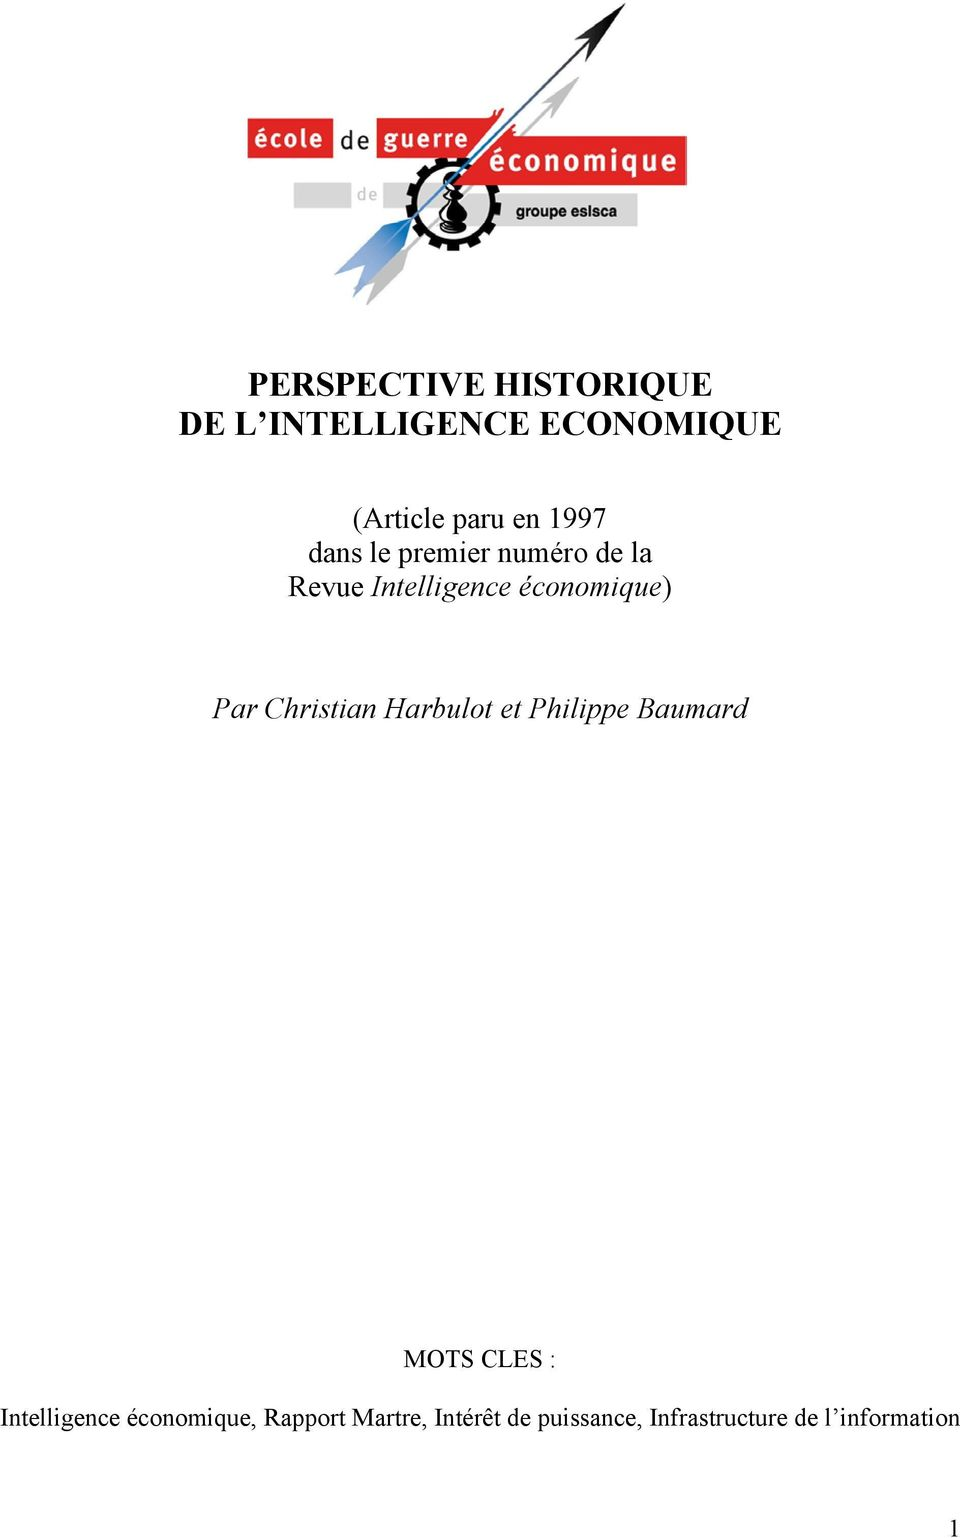 Christian Harbulot et Philippe Baumard MOTS CLES : Intelligence